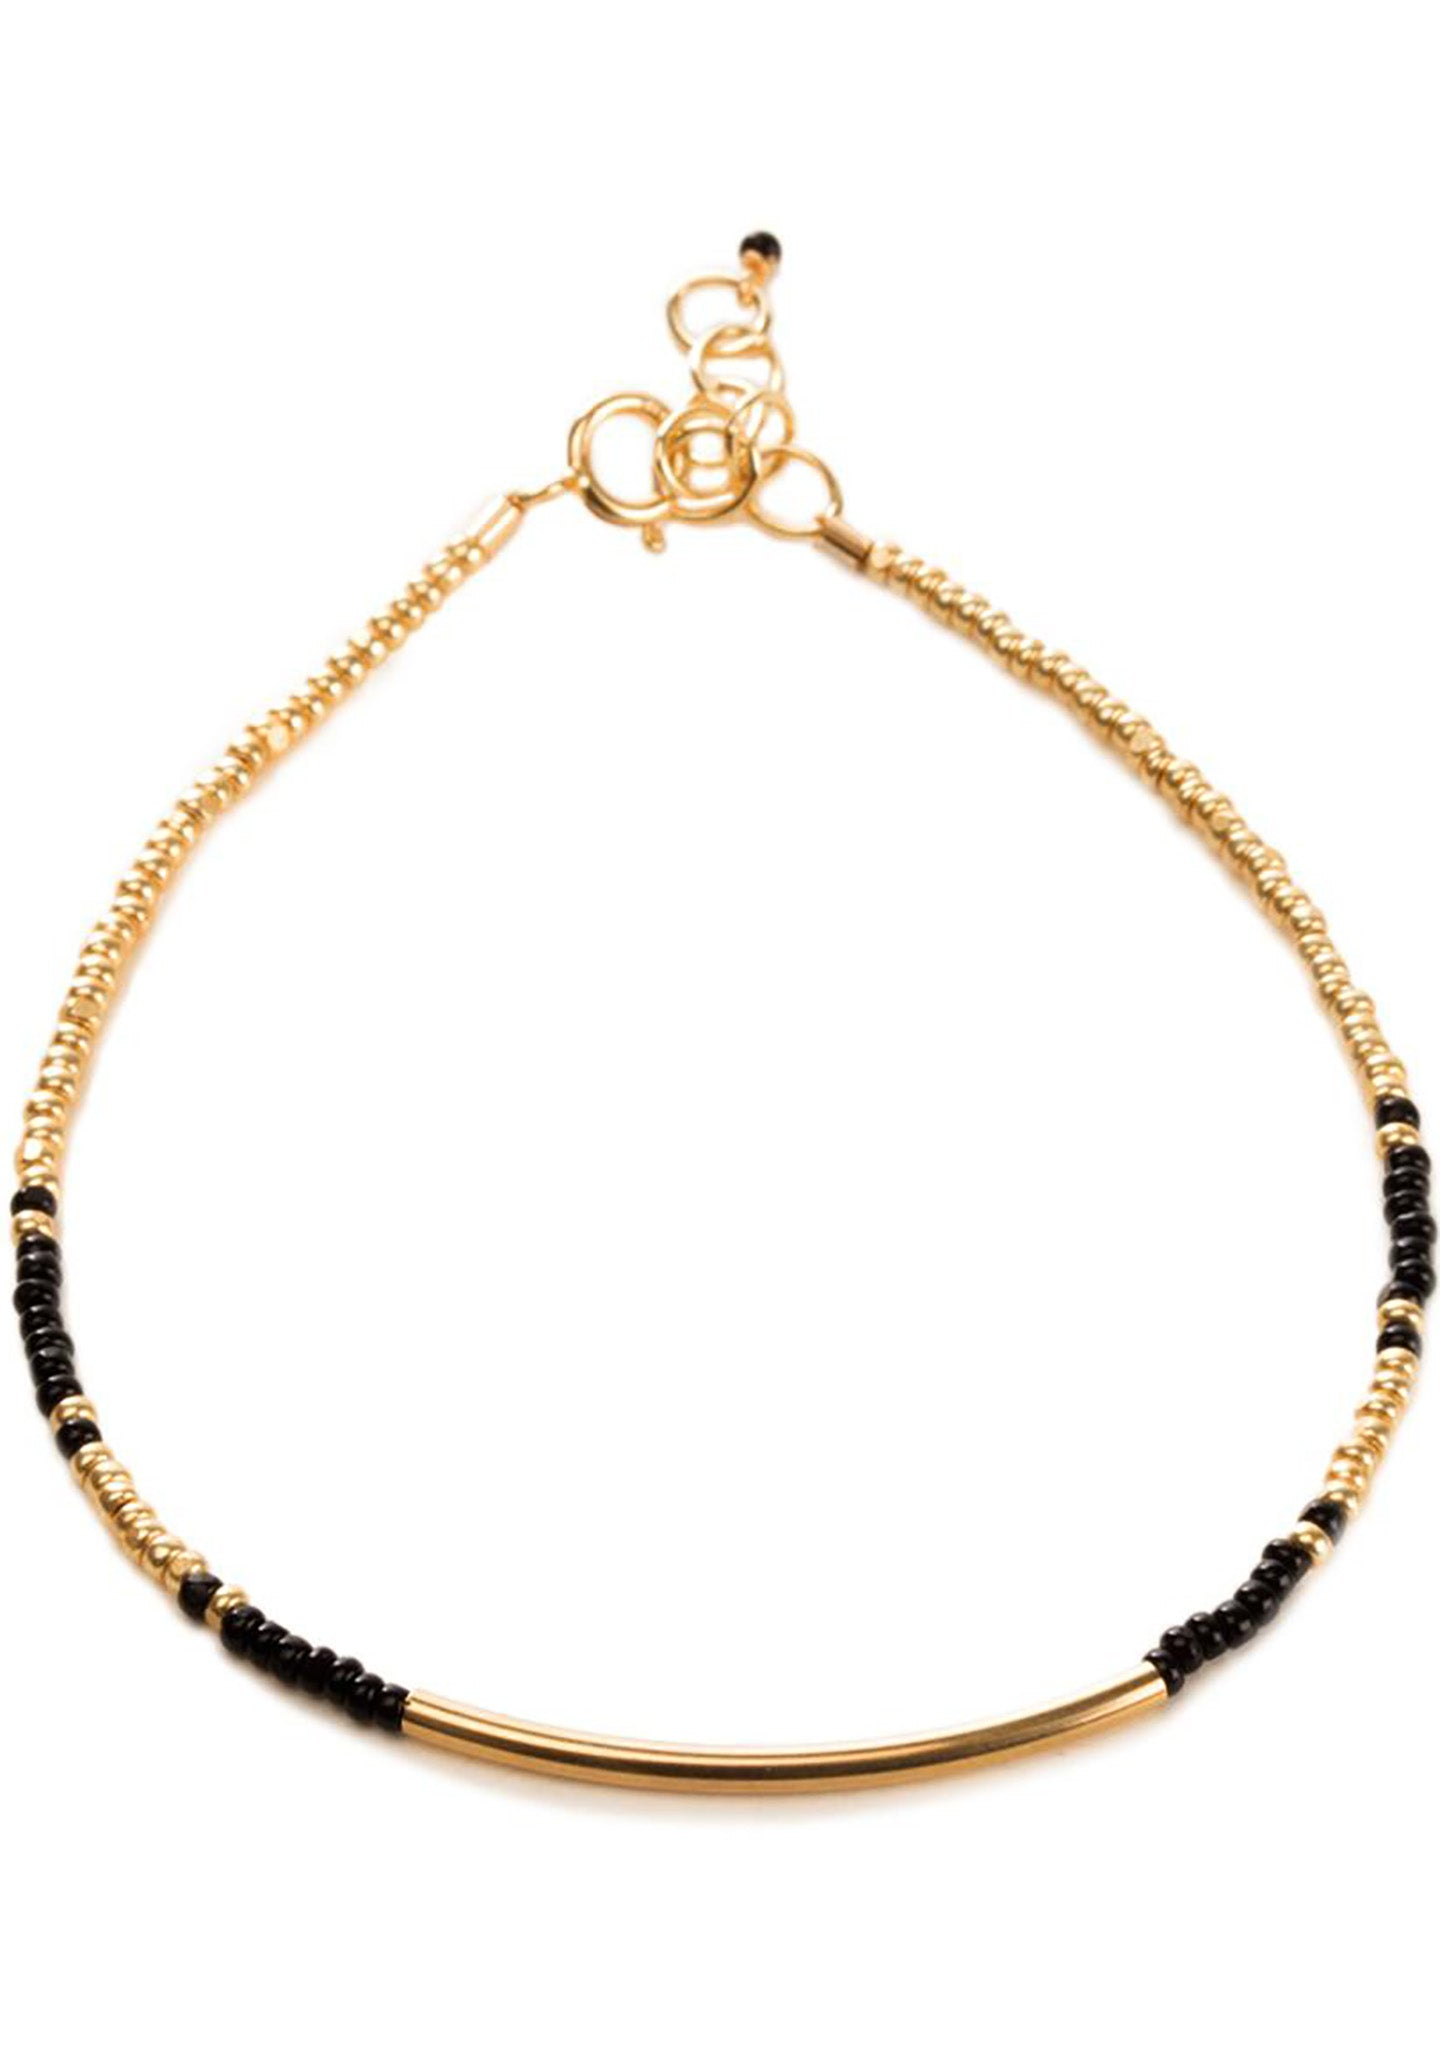 DOGEARED Balance Seed Bead Bracelet in Black/Gold